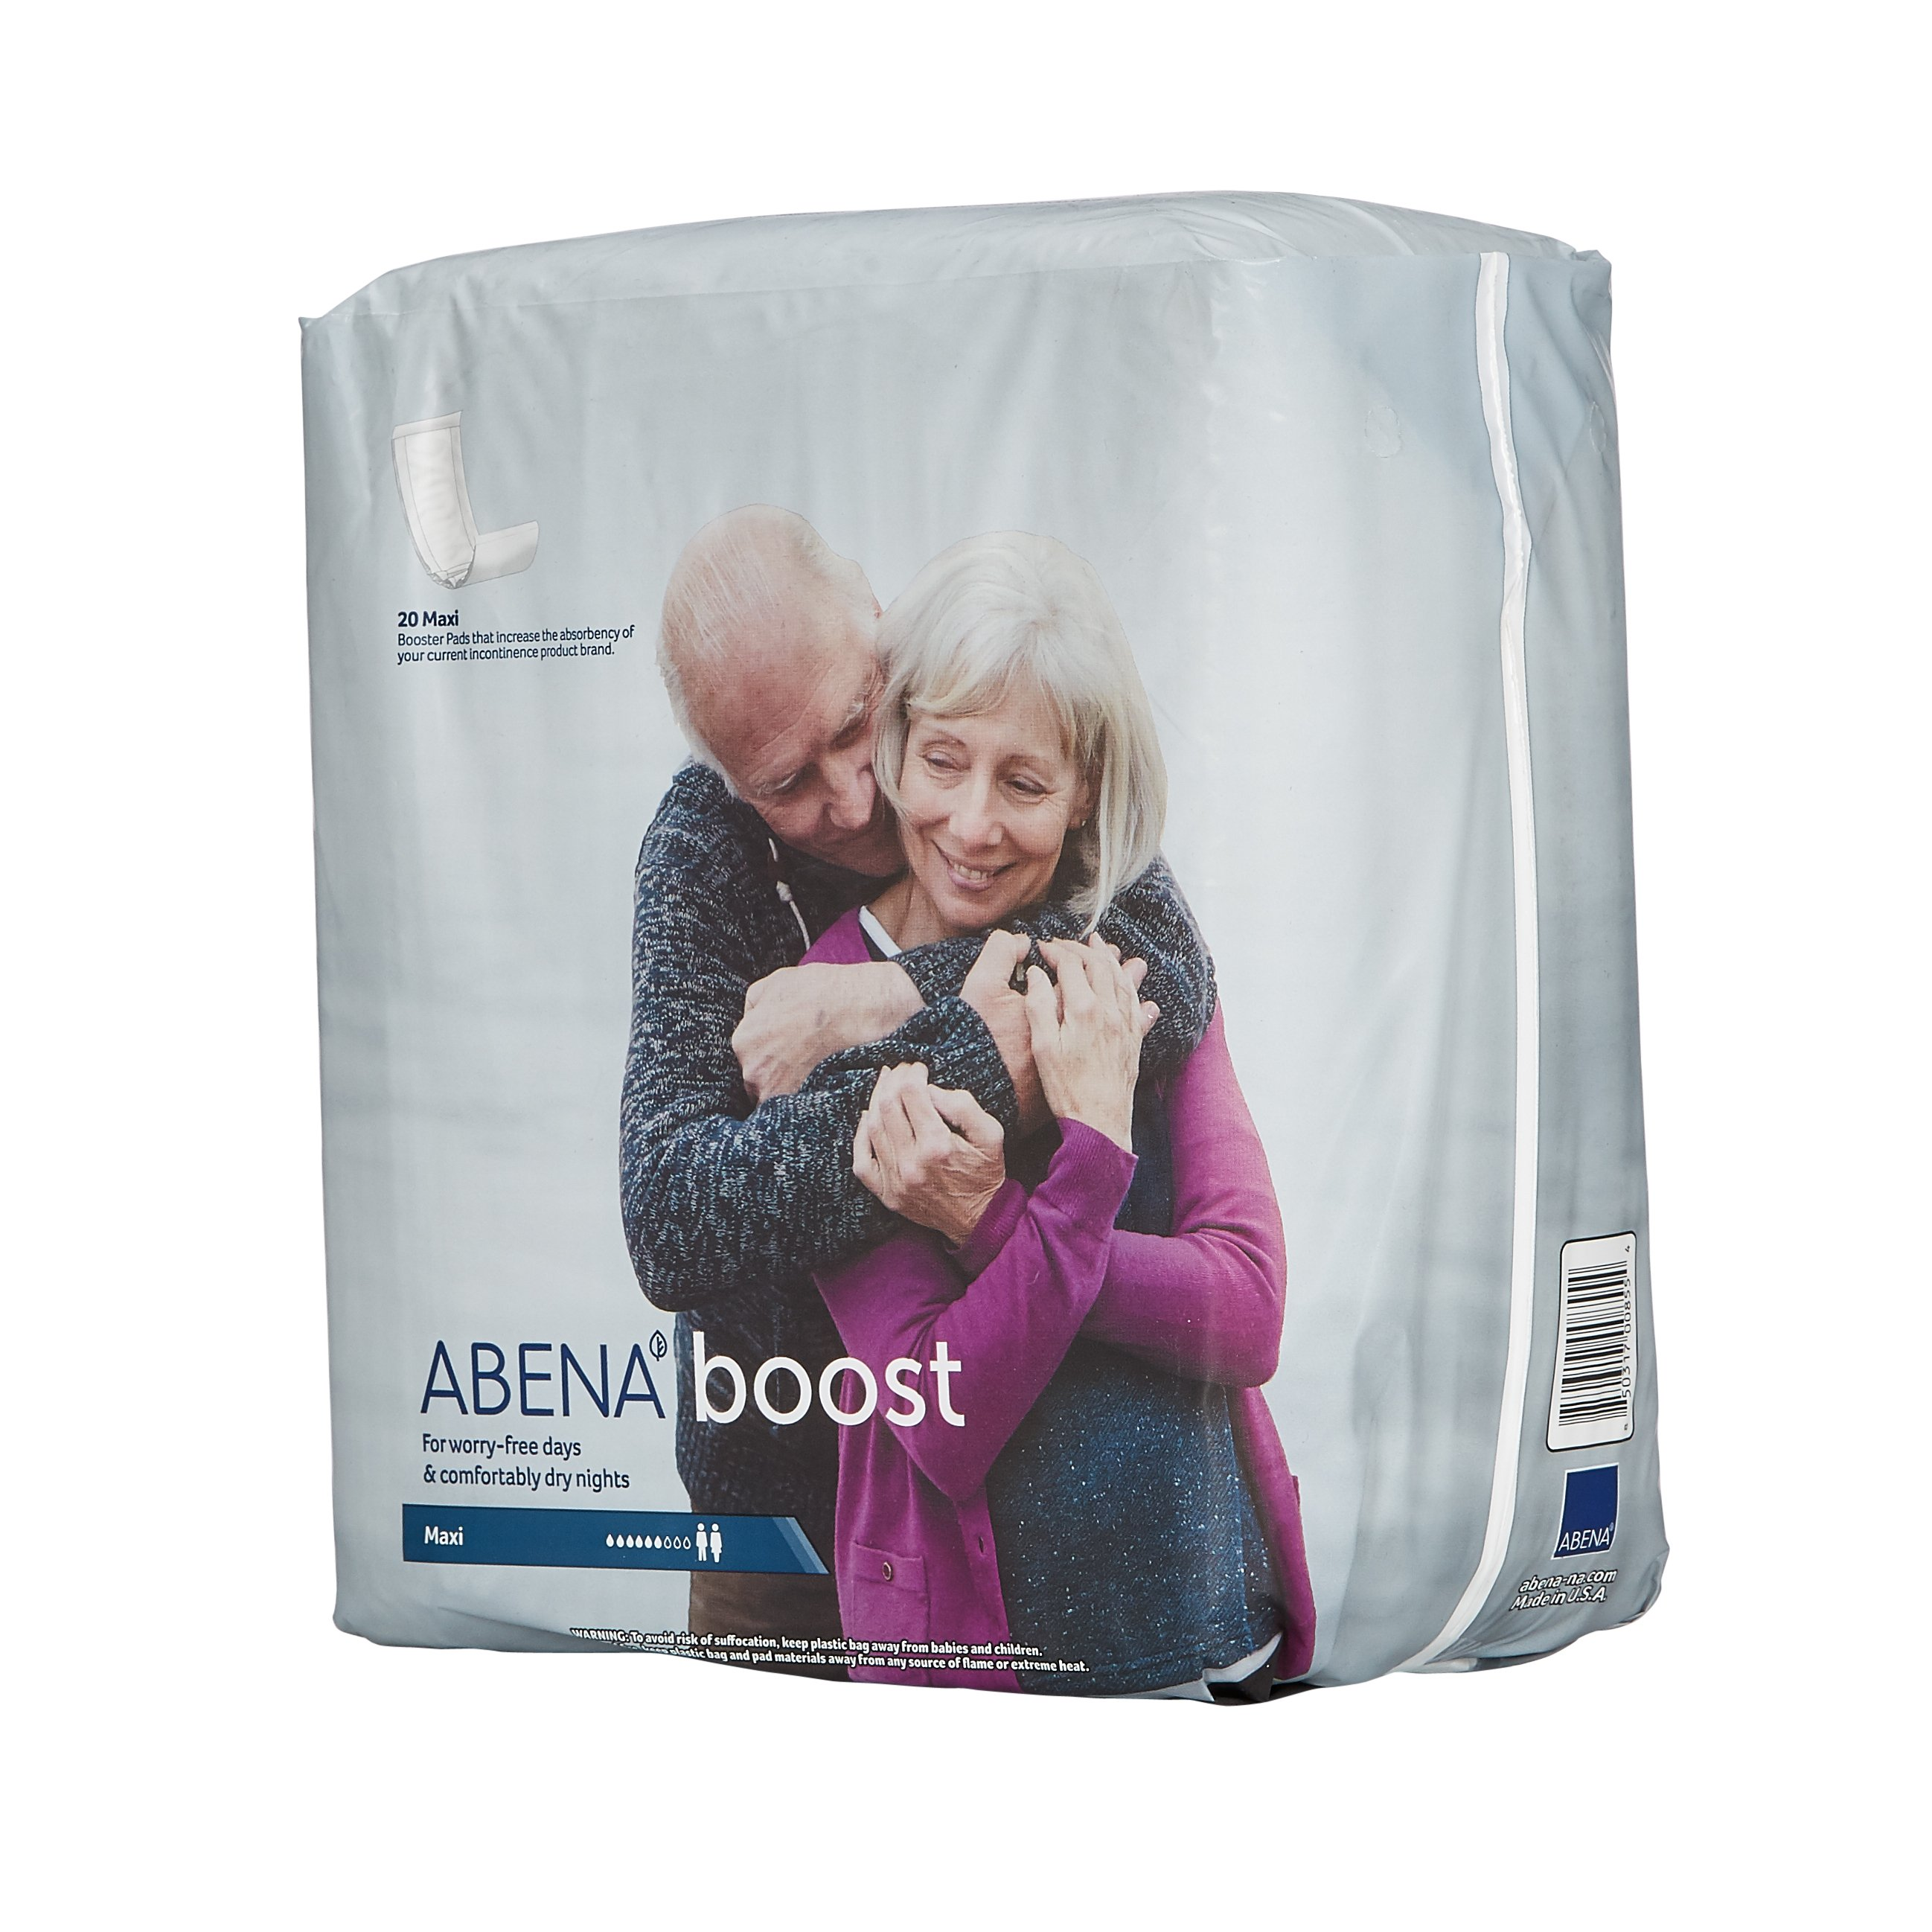 Abena Incontinence Booster Pad 7 X 24 Inch Moderate Absorbency Fluff / Polymer One Size Fits Most Unisex Disposable, 4035 - Case of 120